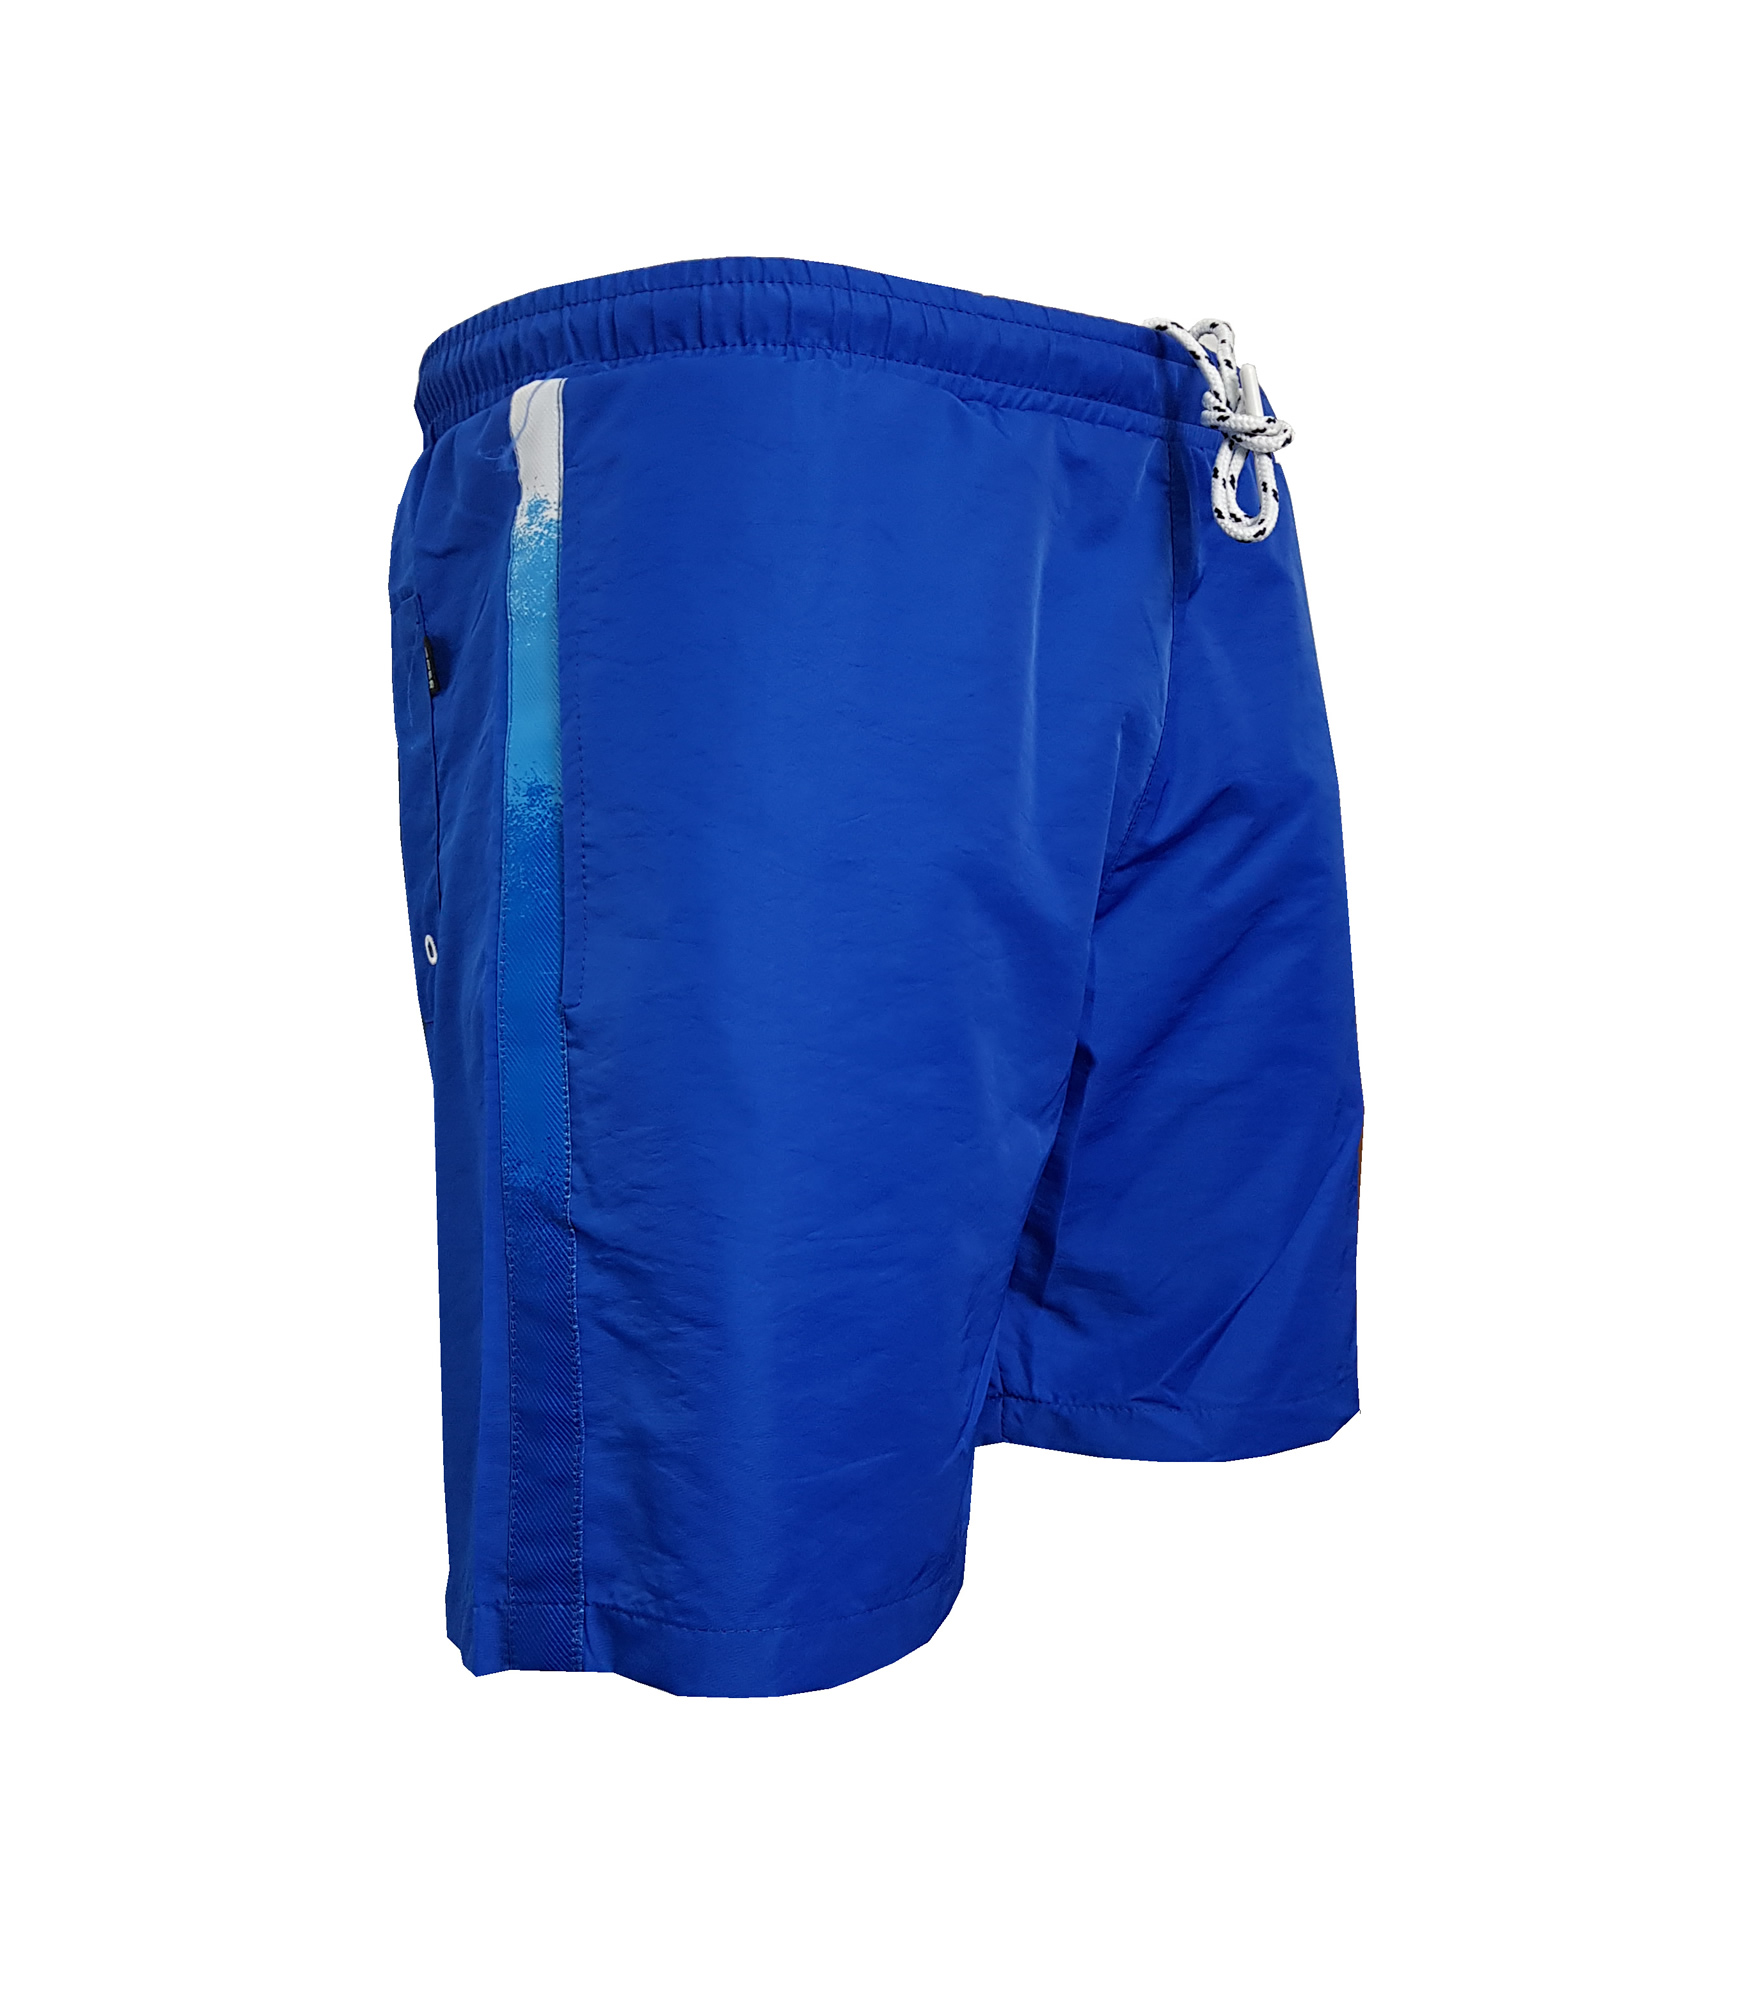 78737dab1 Hugo Boss Polyester Swim Shorts in Royal Blue | INTOTO7 Menswear